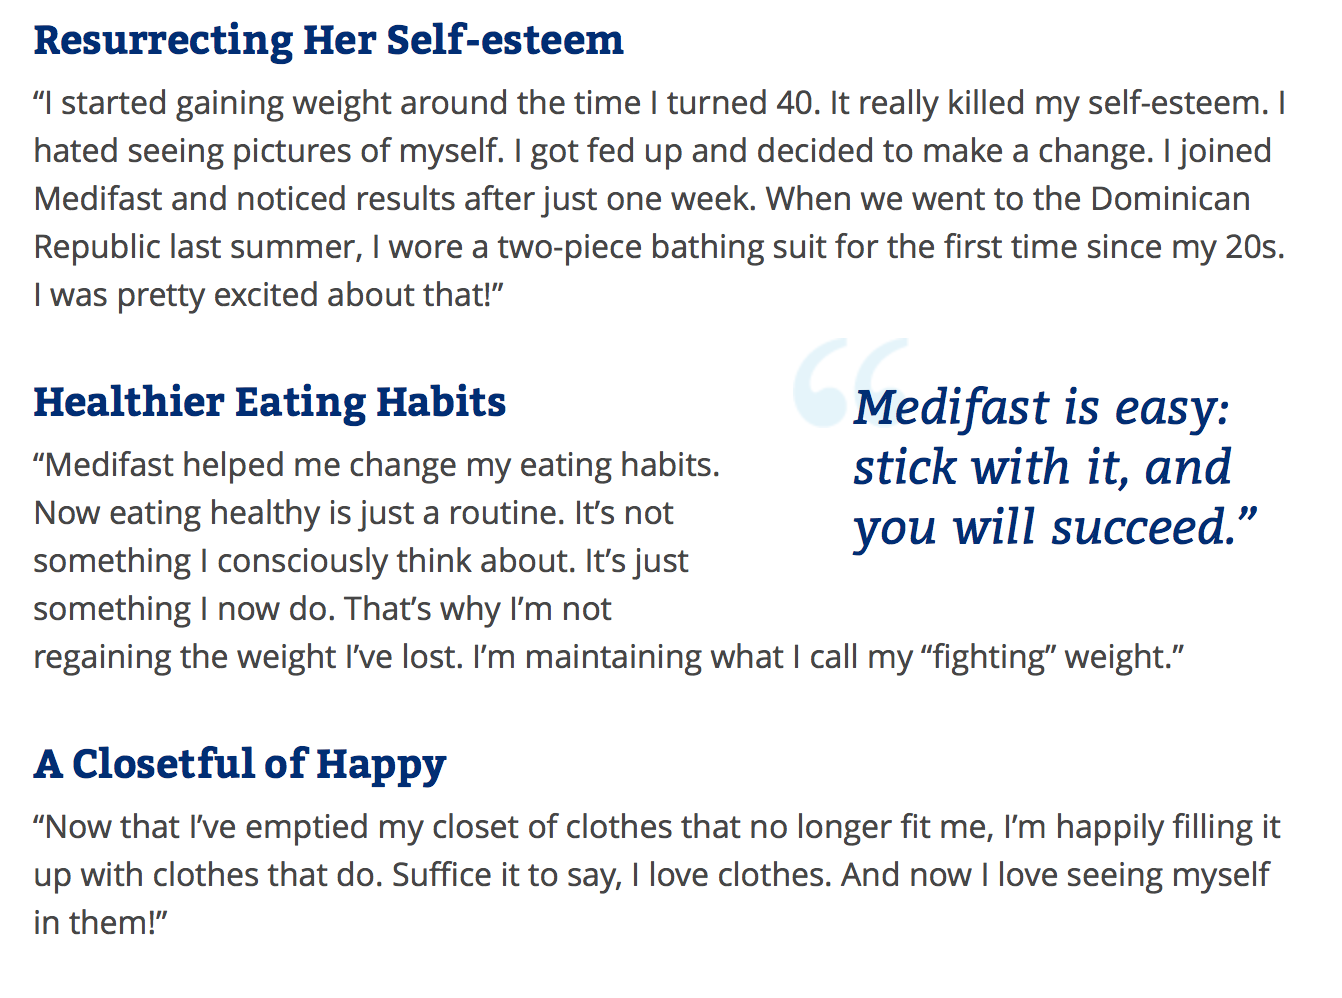 Highlights for Medifast. Losing weight is a long and difficult process. But when you have help from Medifast, a well-respected meal plan program, you won't have to do it alone.